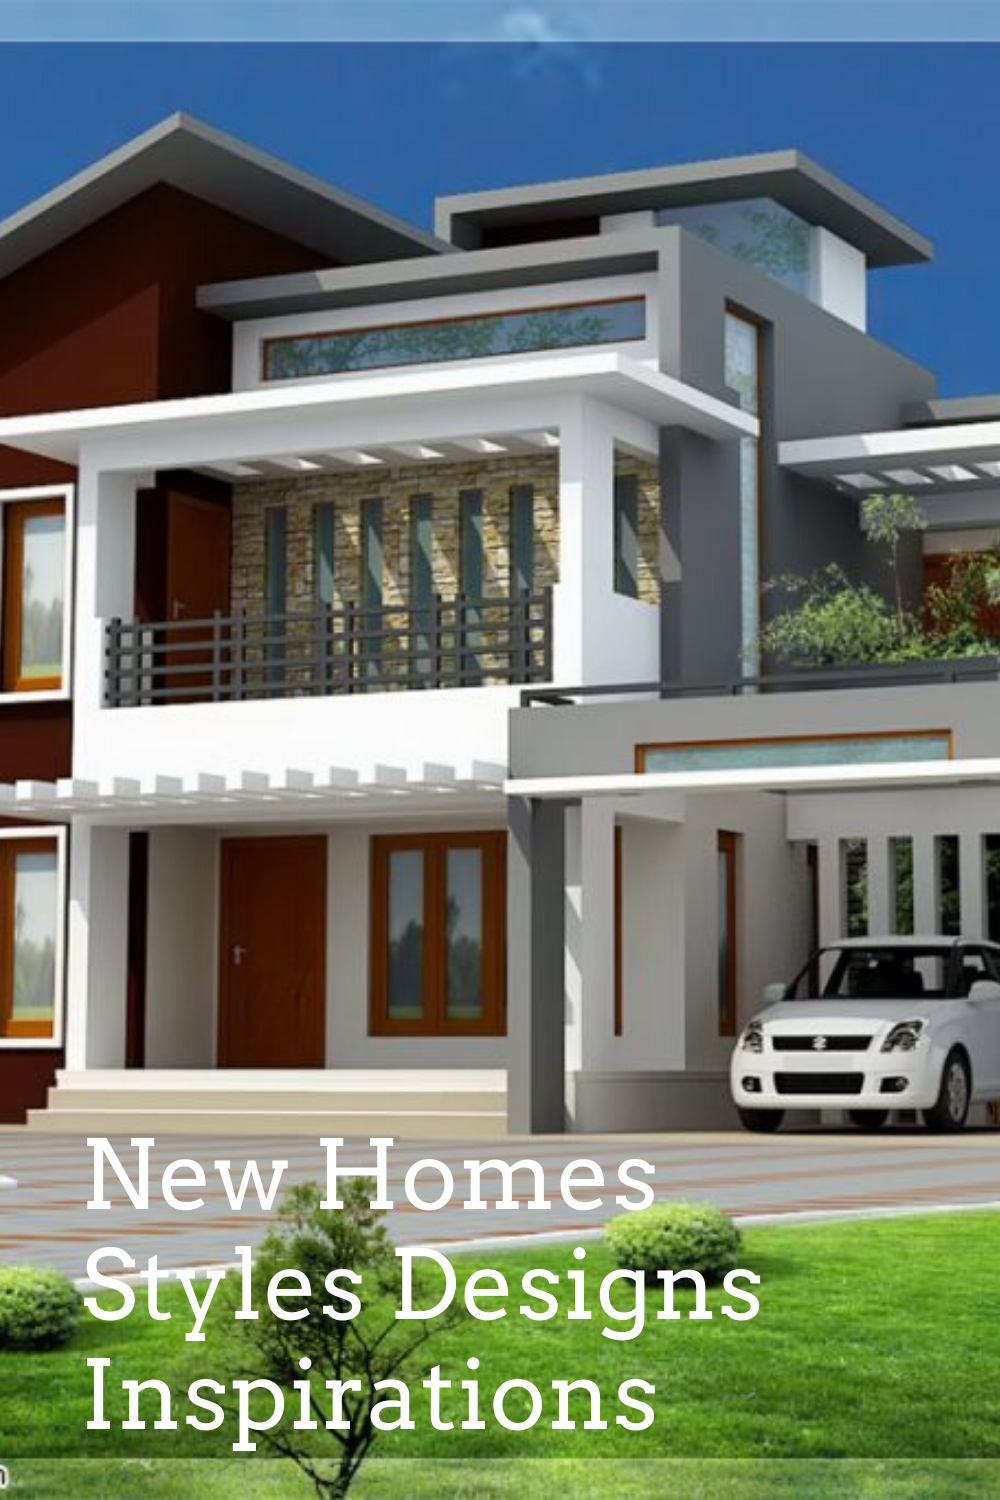 13 Wonderful New Homes Styles Designs Inspirations In 2020 House Styles House Design Pictures House Front Design